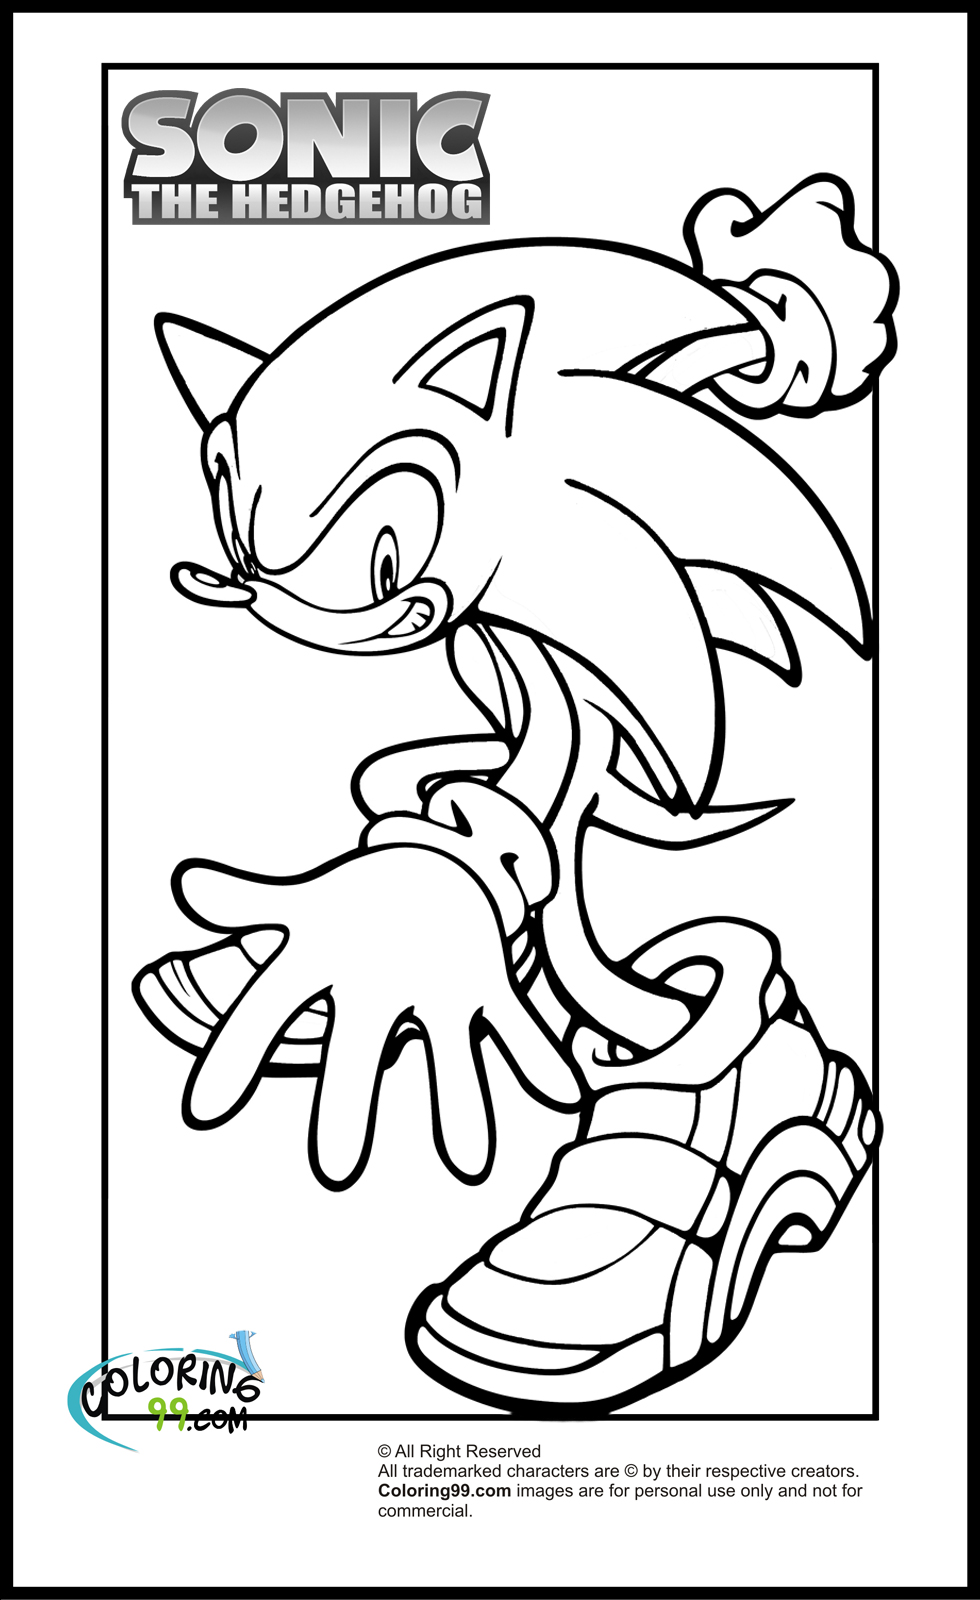 sonic coloring page sonic coloring pages team colors coloring page sonic